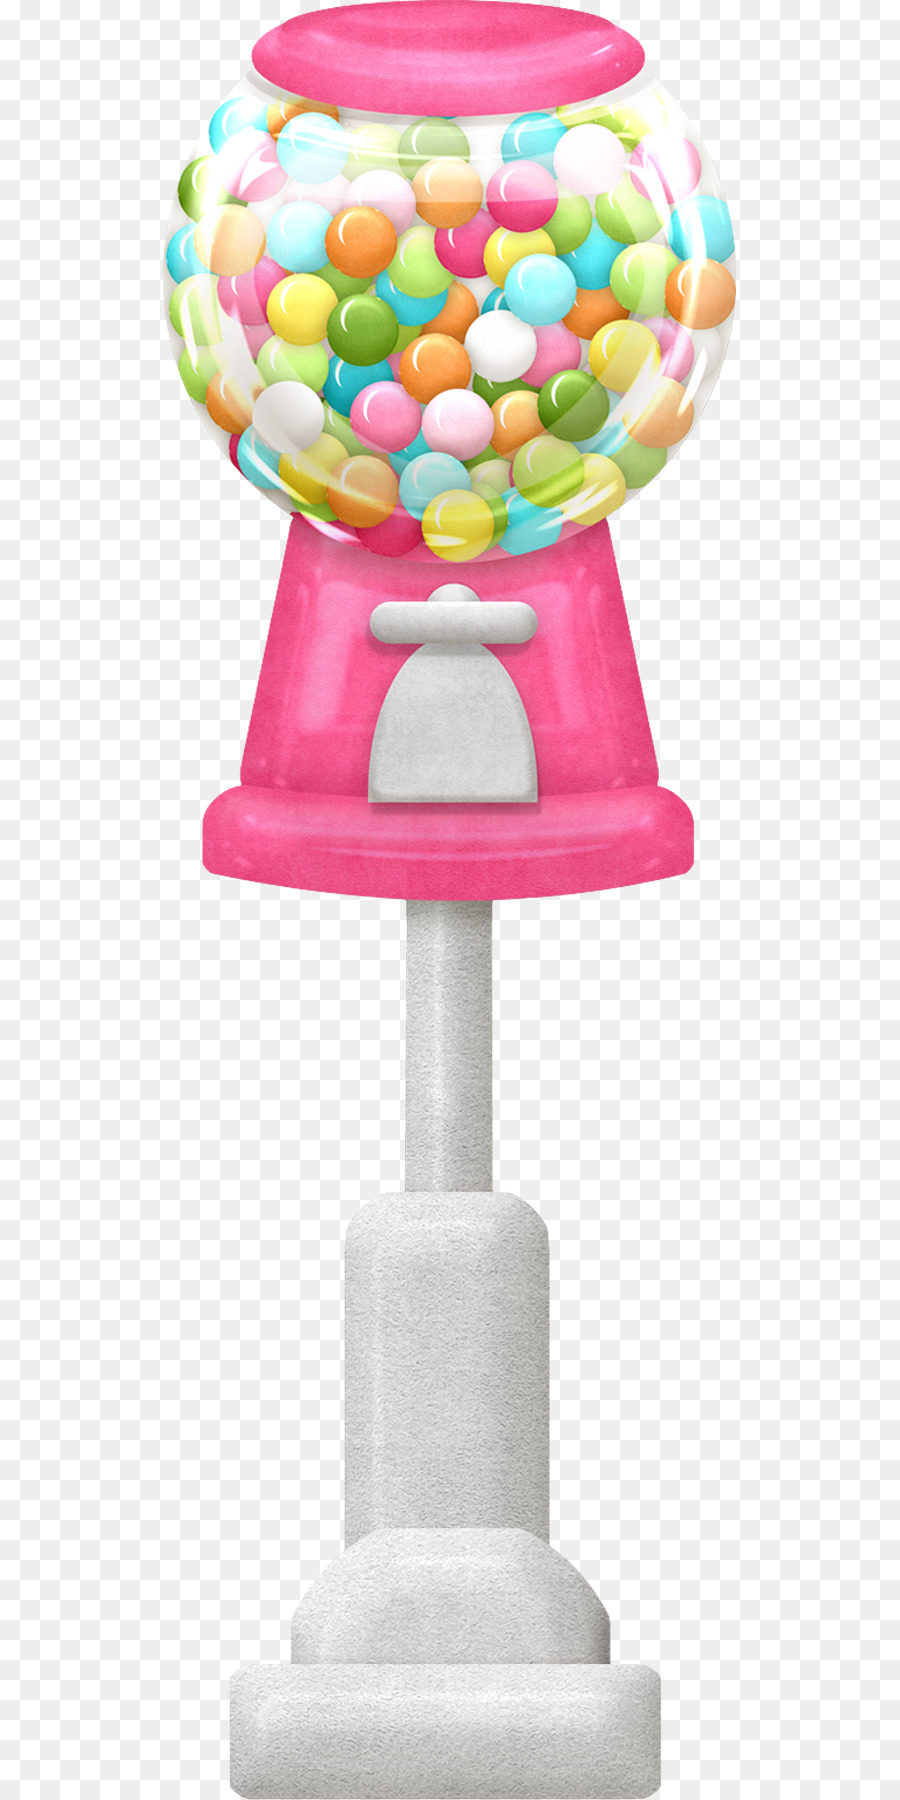 Chewing gum Gumball machine Candy Bubble gum Clip art - Jar of candy ...